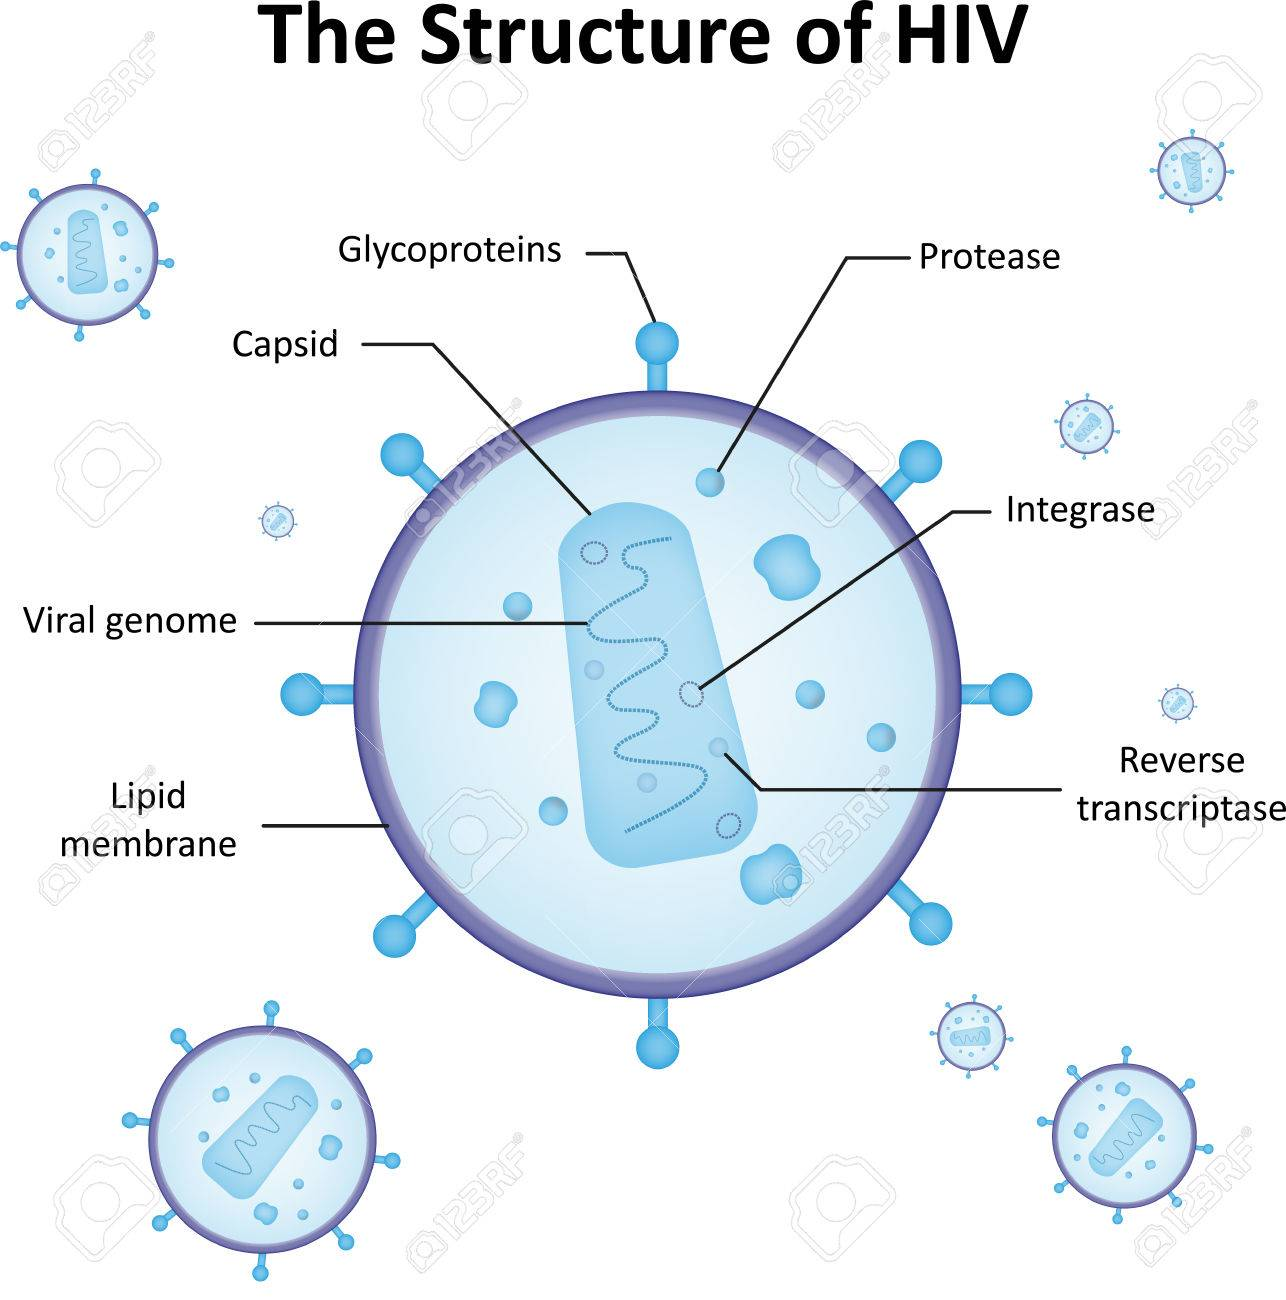 The Structure Of HIV Royalty Free Cliparts, Vectors, And Stock ...